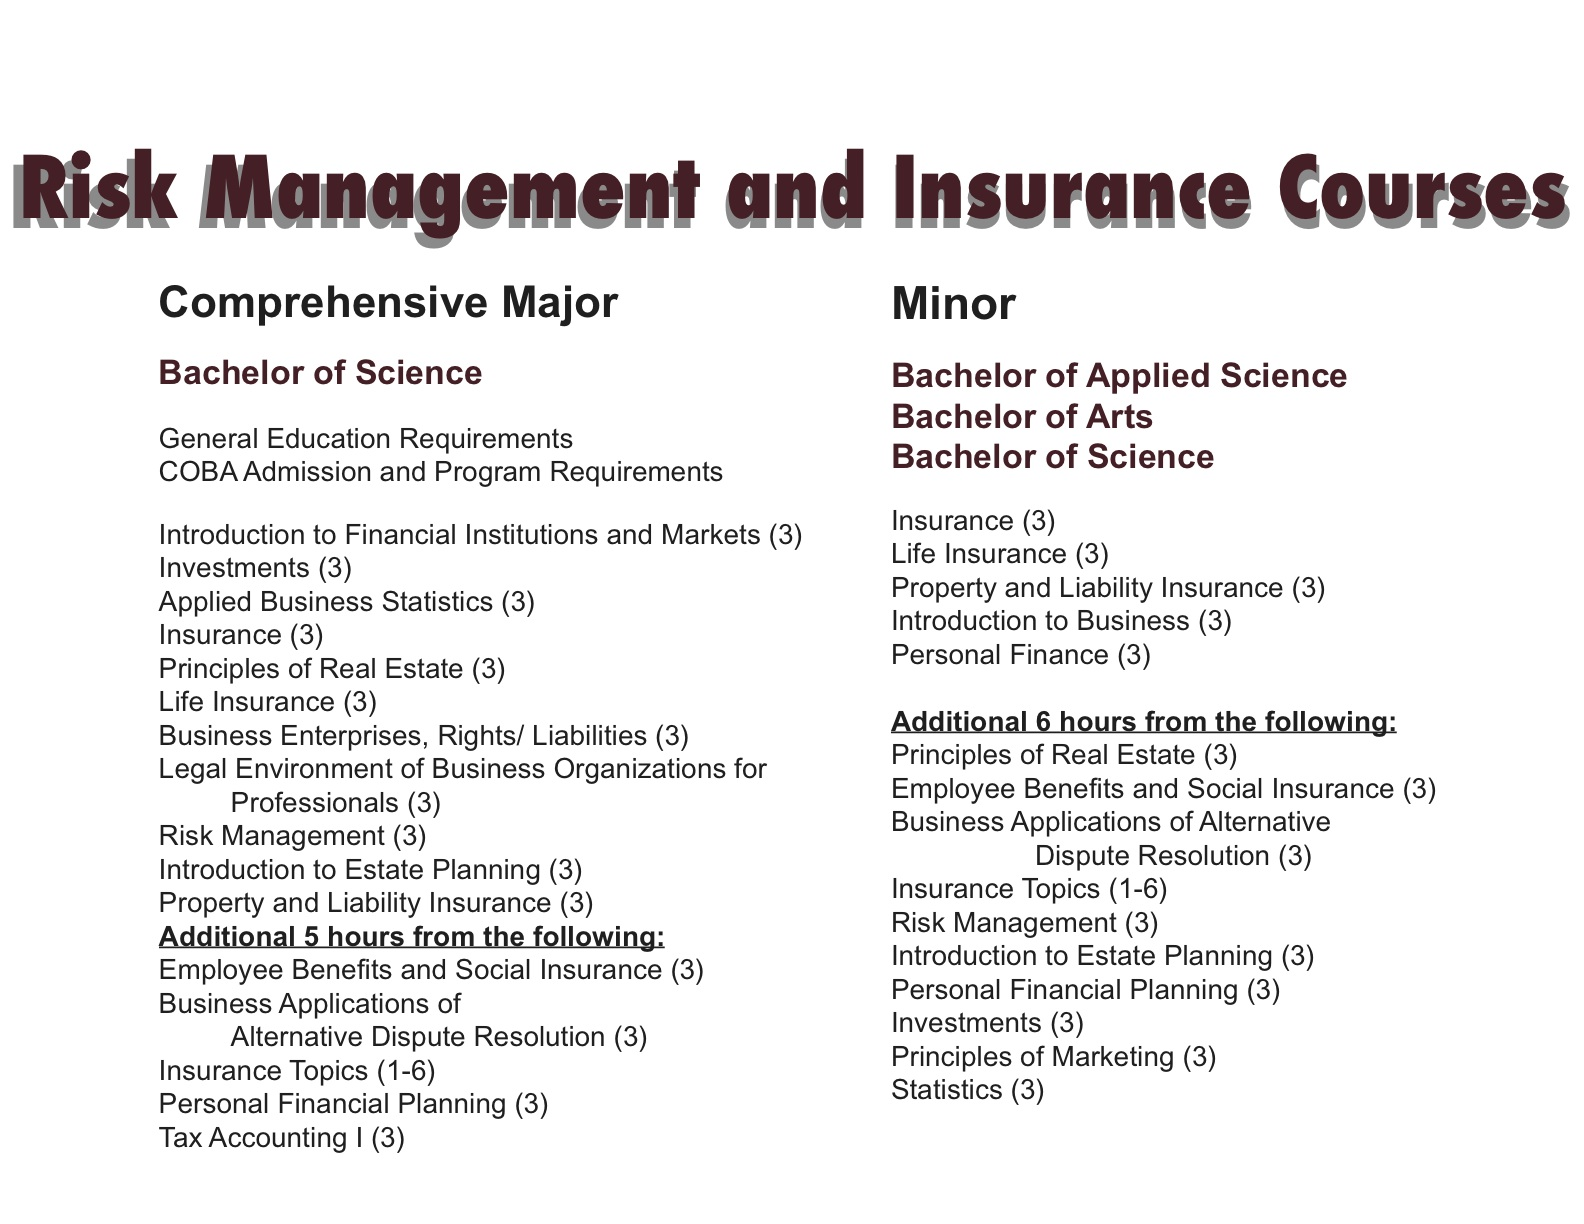 Risk Management and Insurance what are major subjects in college